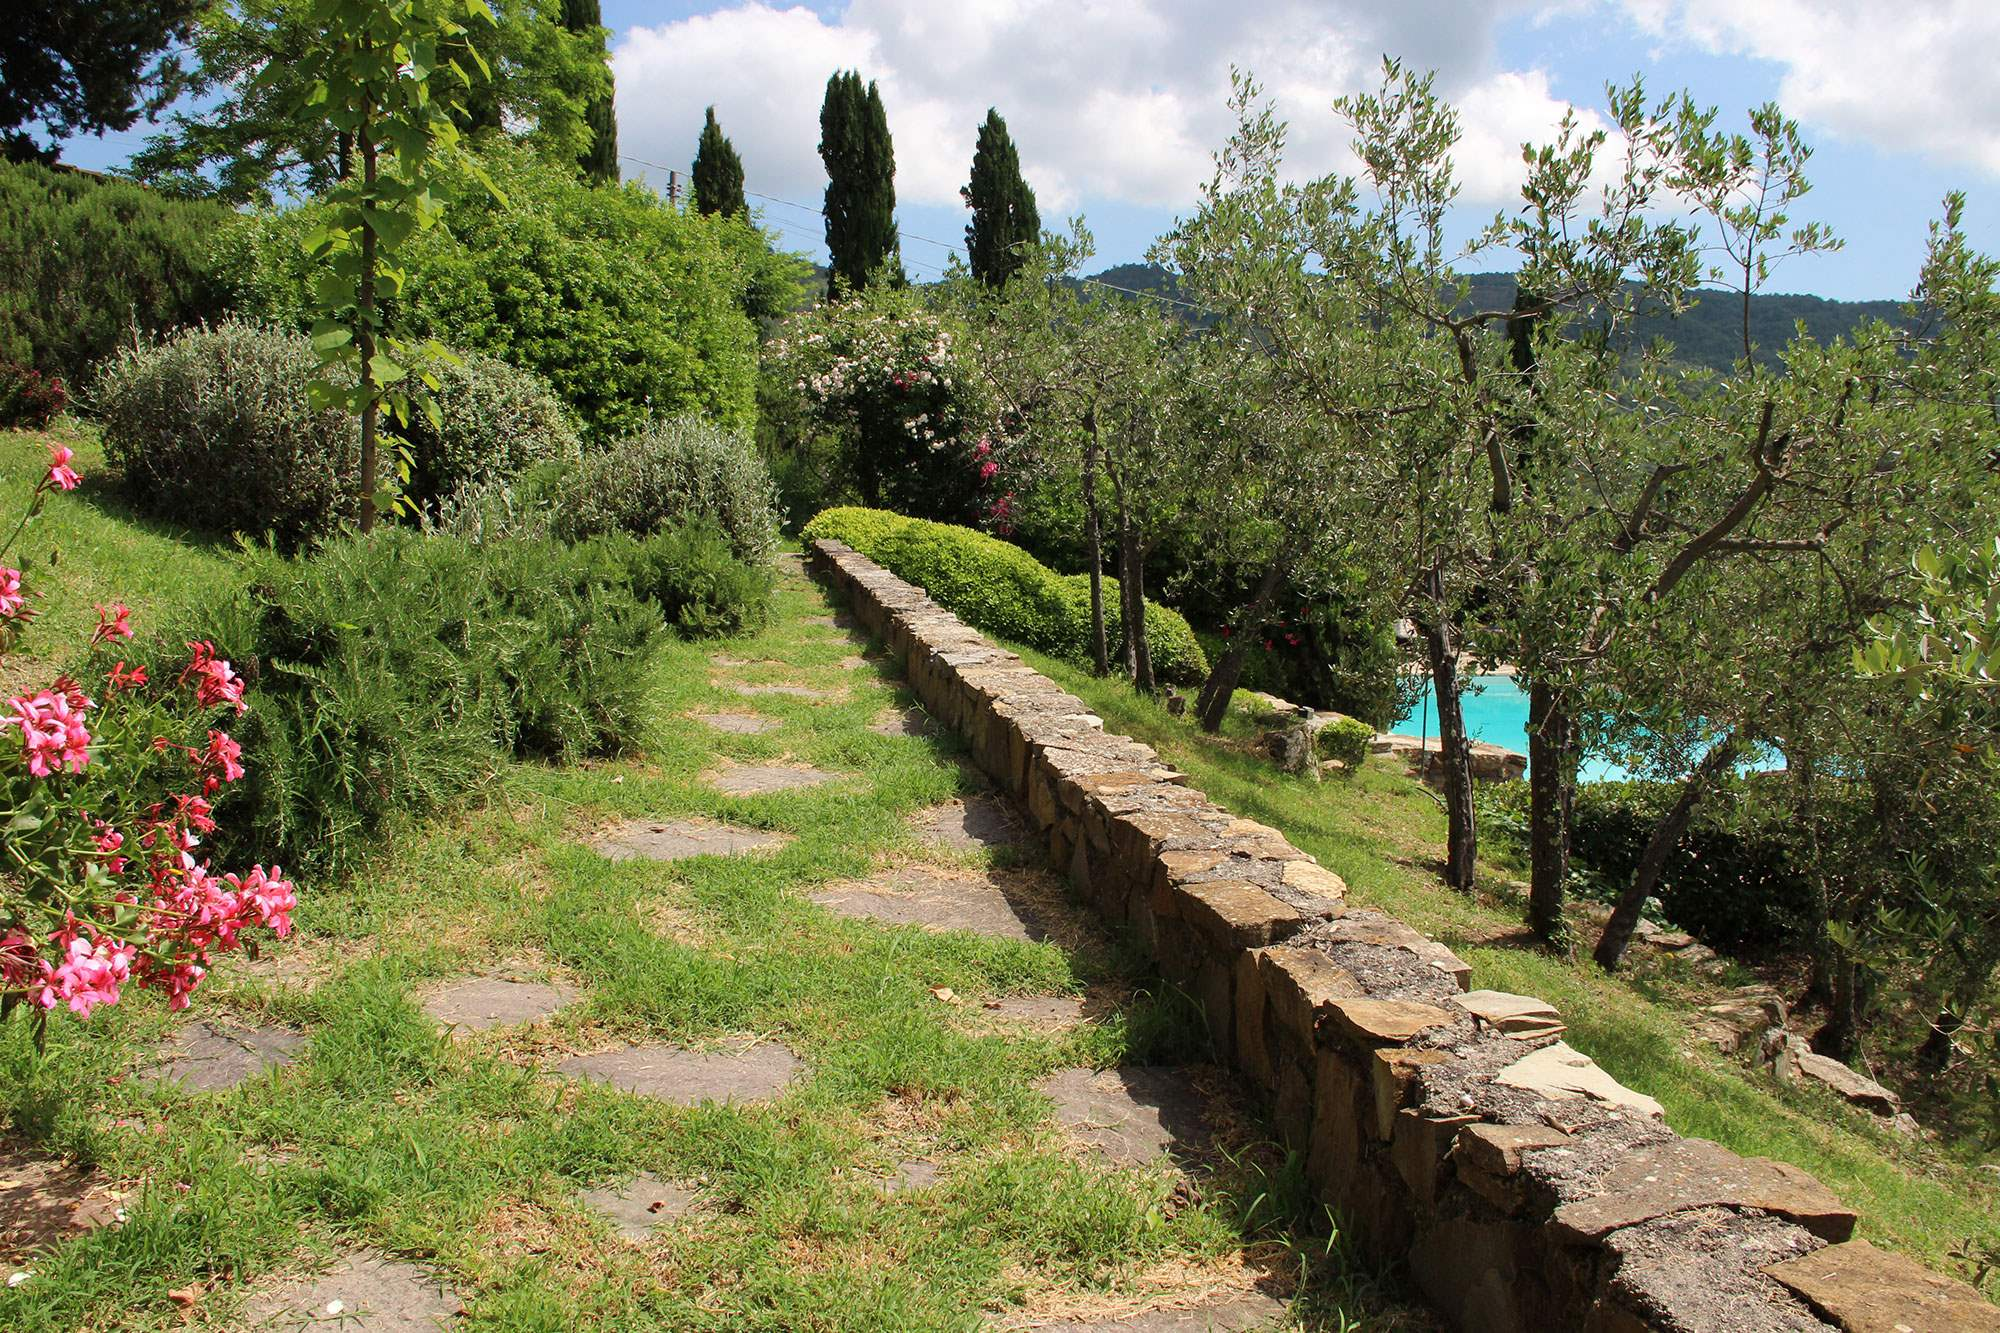 Villa Giacinto, 6 Bedroom rate, 6 bedroom villa in Chianti & Countryside, Tuscany Photo #14